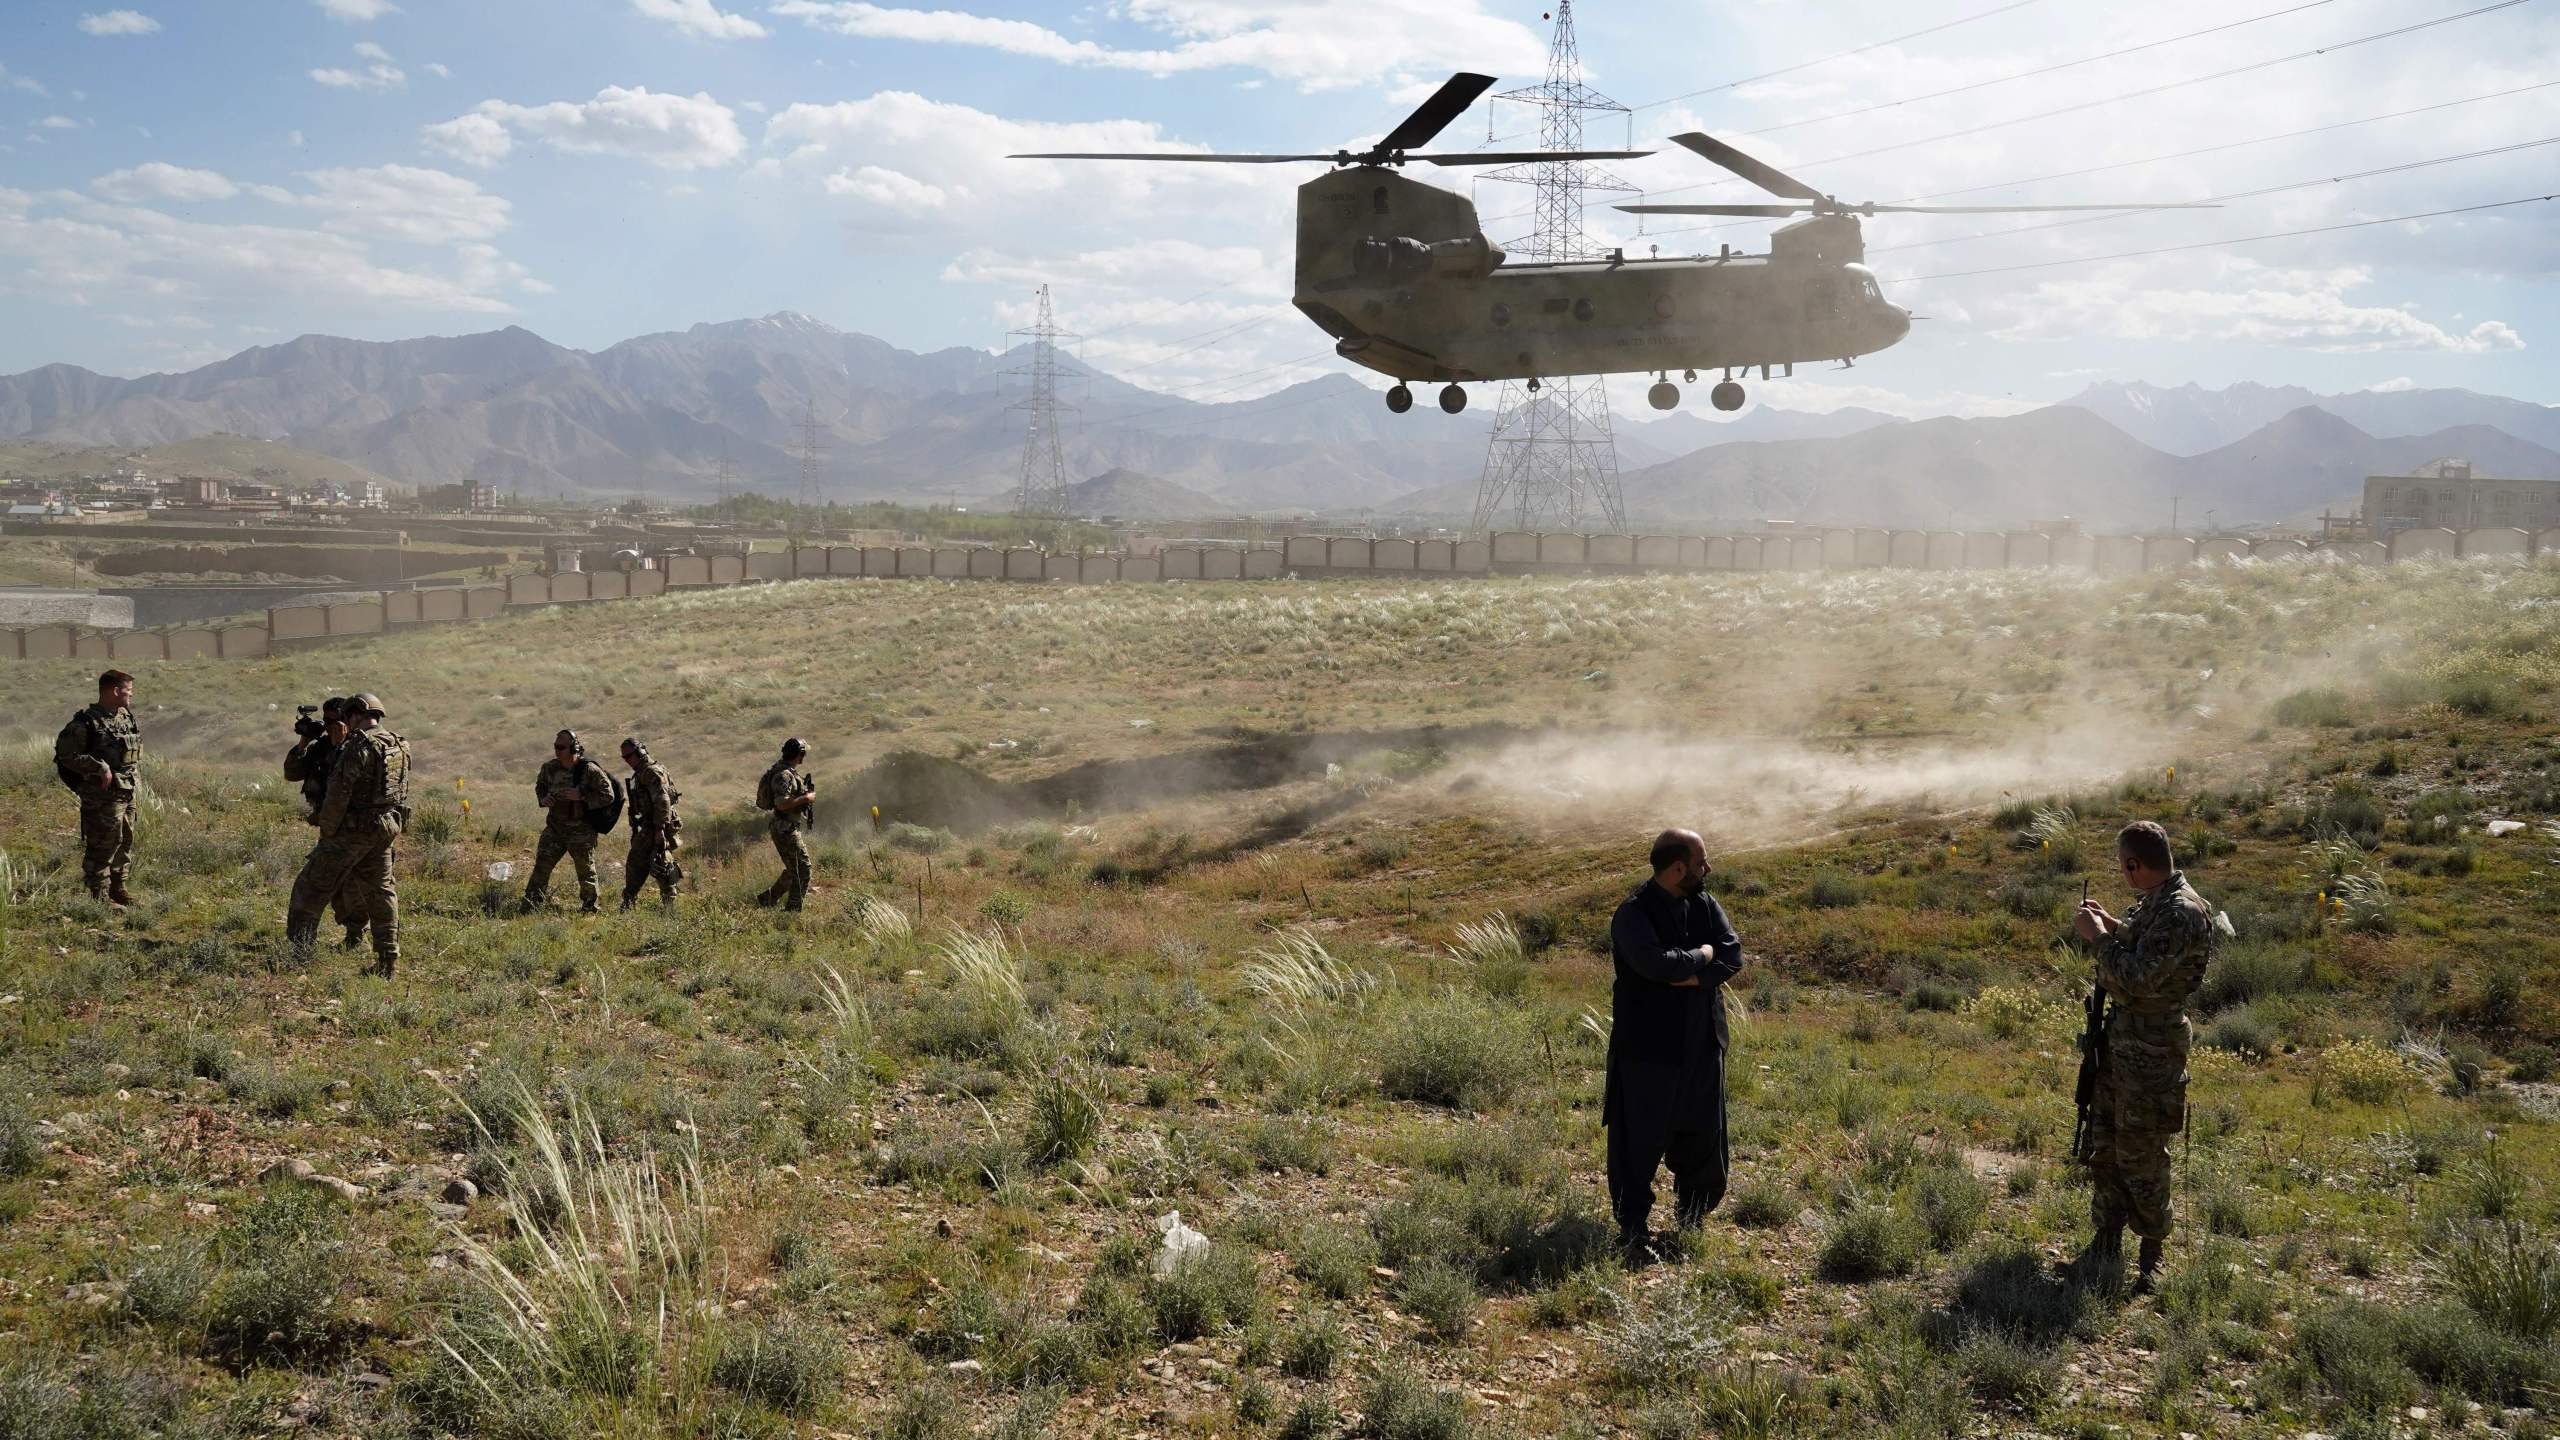 In this photo taken on June 6, 2019, a U.S. military Chinook helicopter lands on a field outside the governor's palace during a visit by the commander of U.S. and NATO forces in Afghanistan. (Credit: THOMAS WATKINS/AFP via Getty Images)